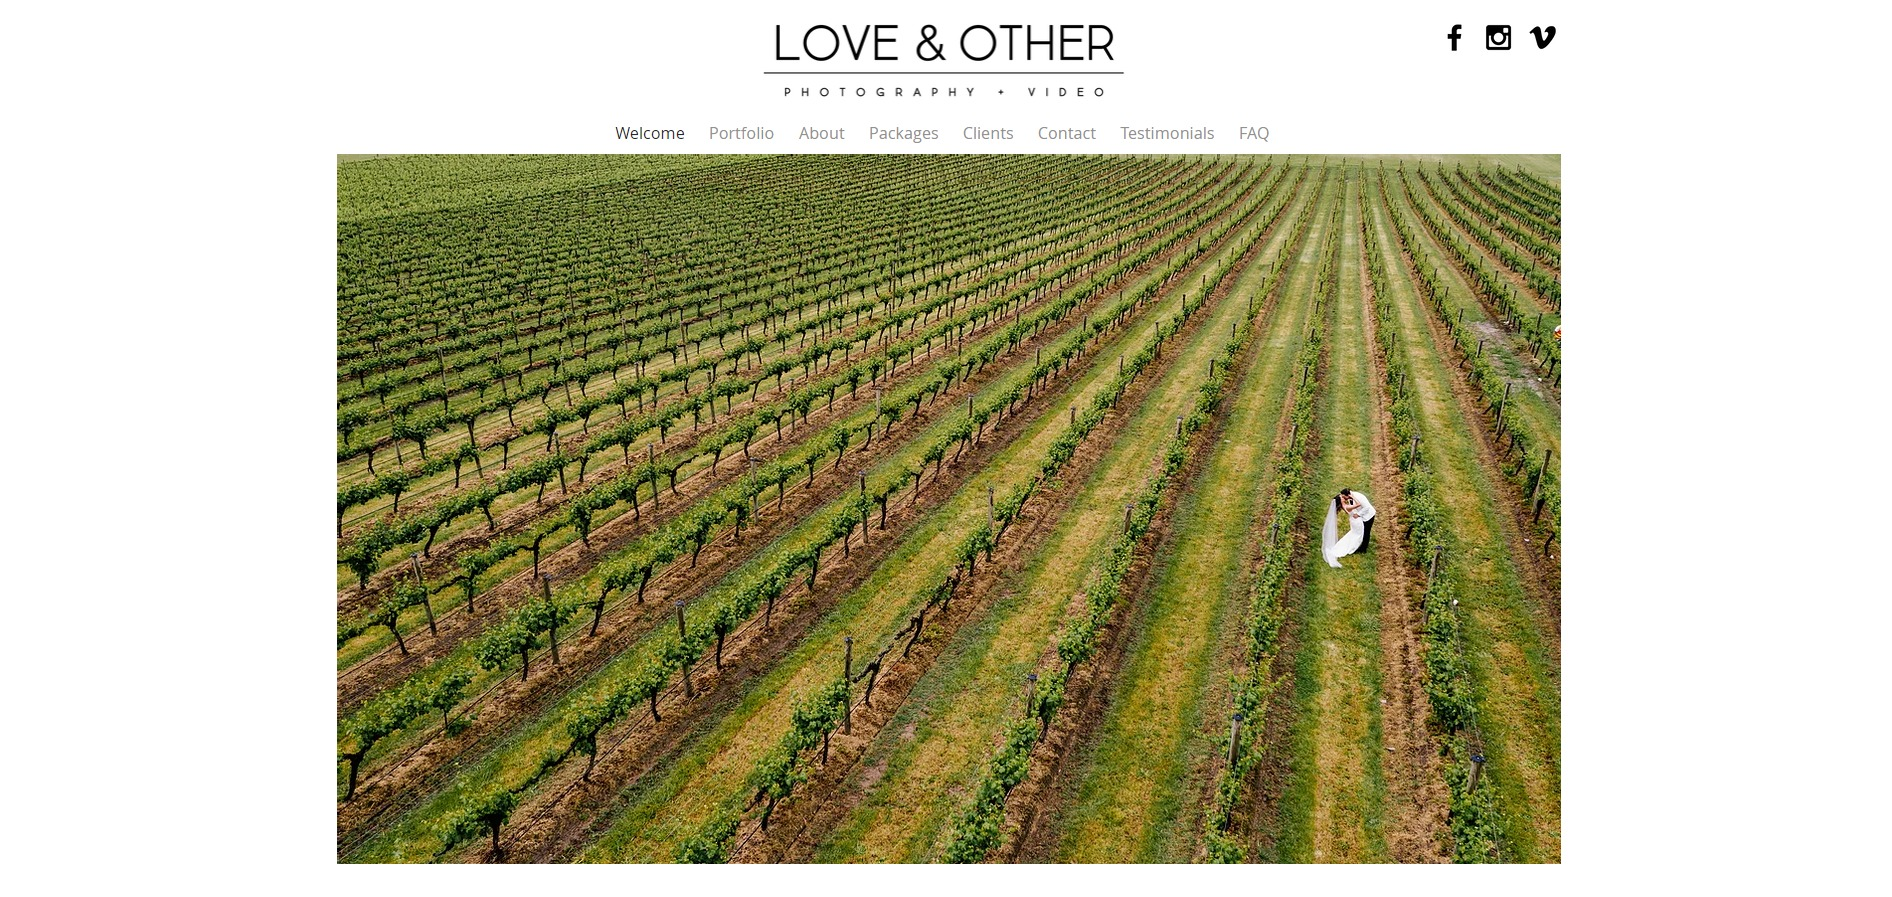 Love & Other Wedding Photography